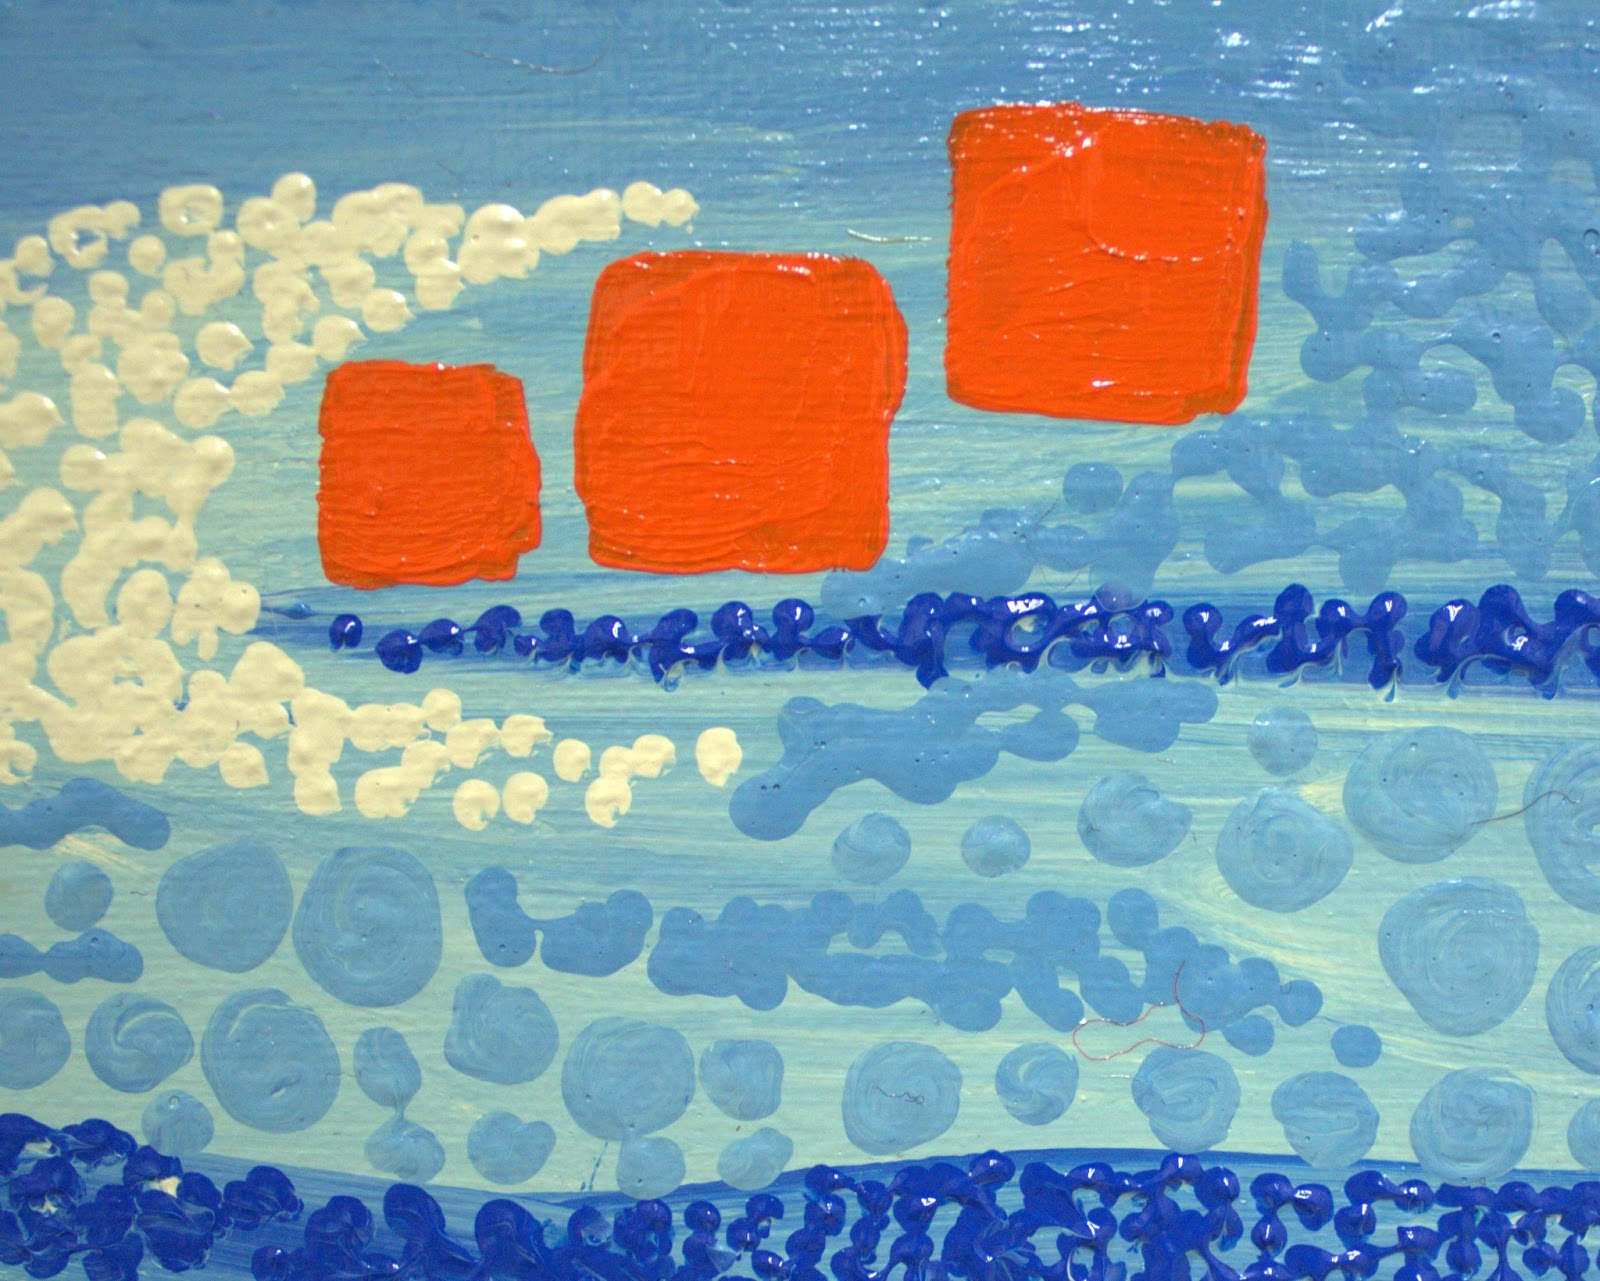 Heavily Edited | Blue and Orange Acrylic Painting on Canvas